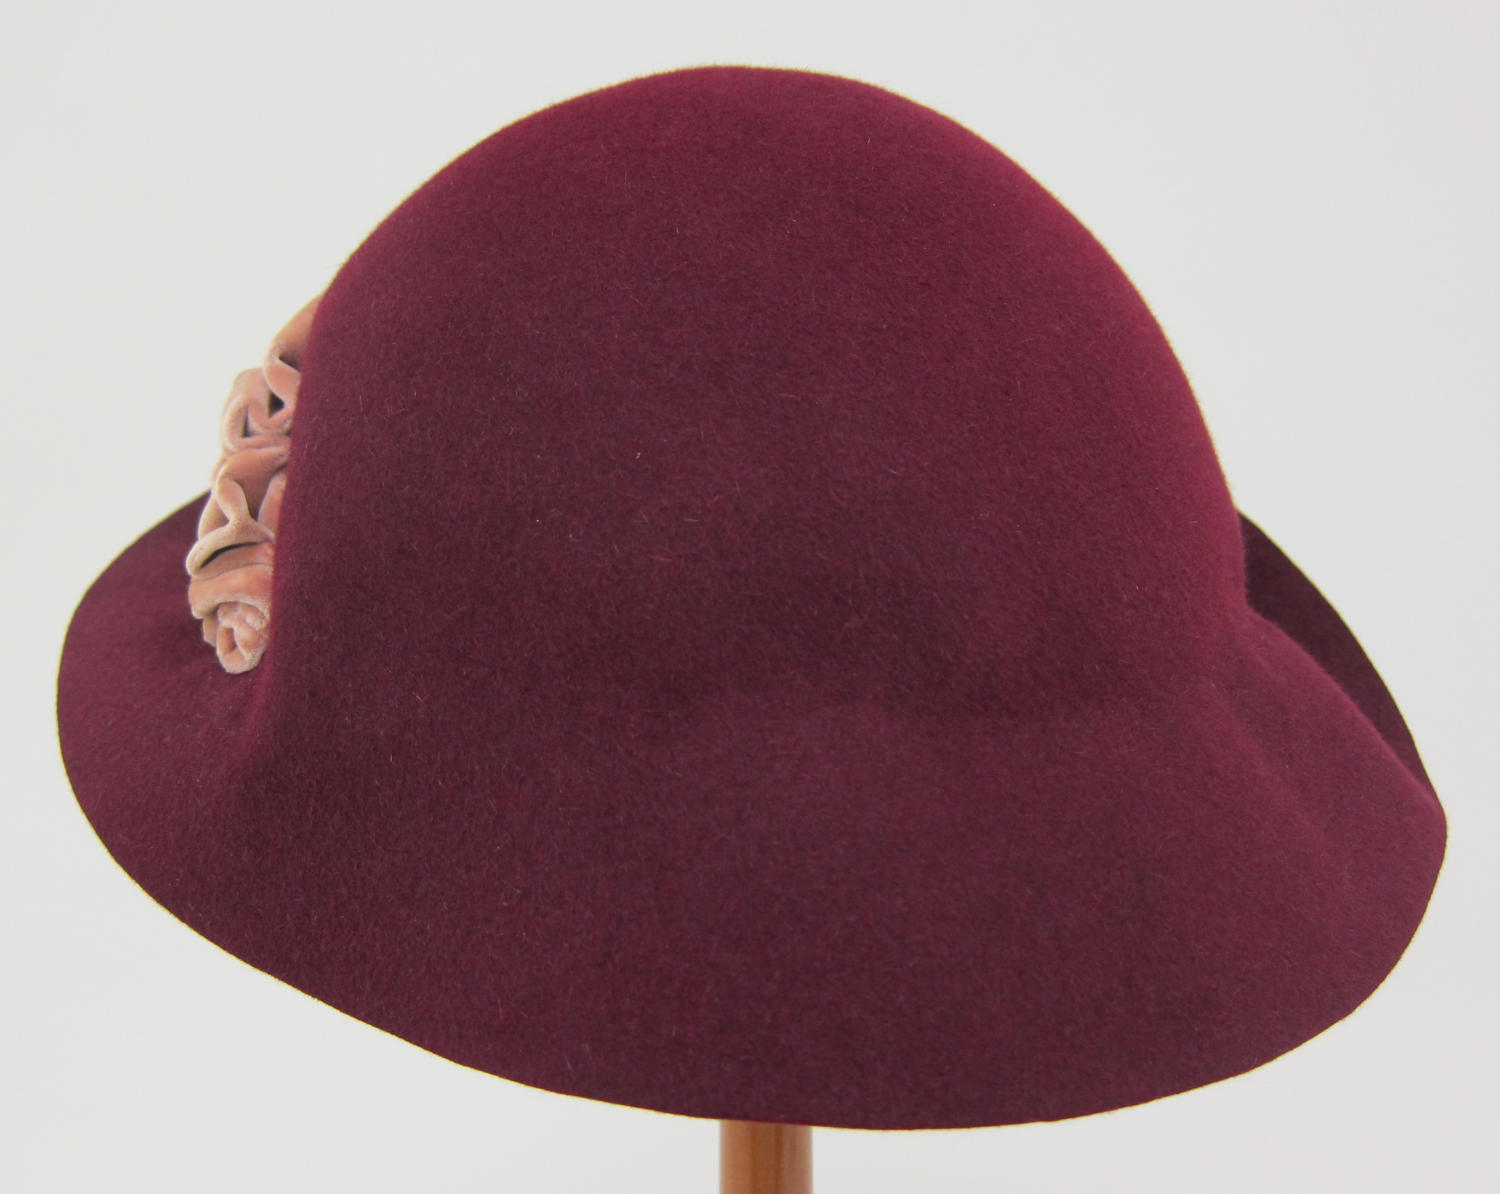 Cloche Hat                                                                                                      [Sequence #]: 4 of 9